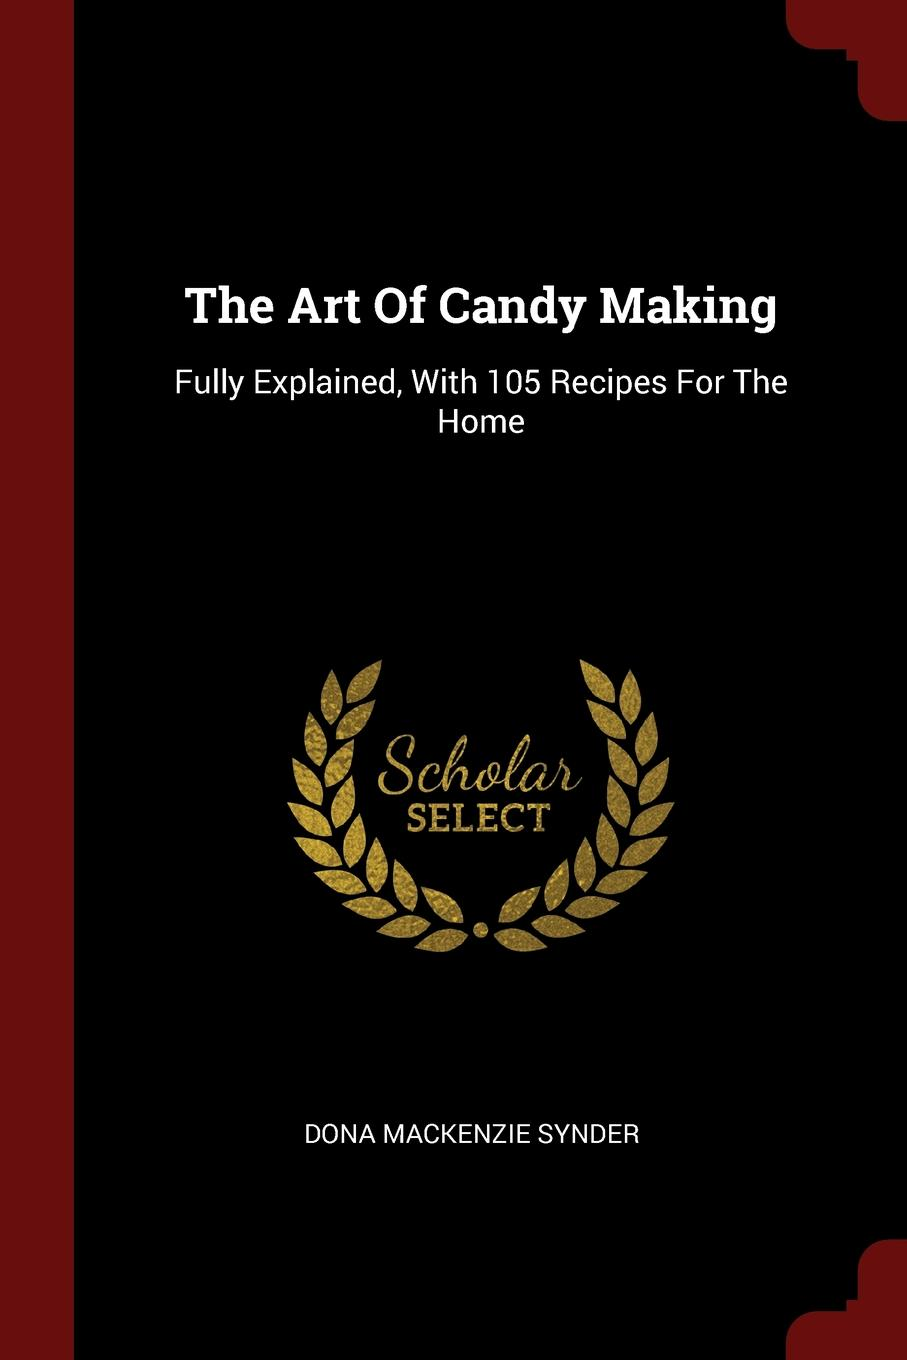 Dona MacKenzie Synder The Art Of Candy Making. Fully Explained, With 105 Recipes For The Home